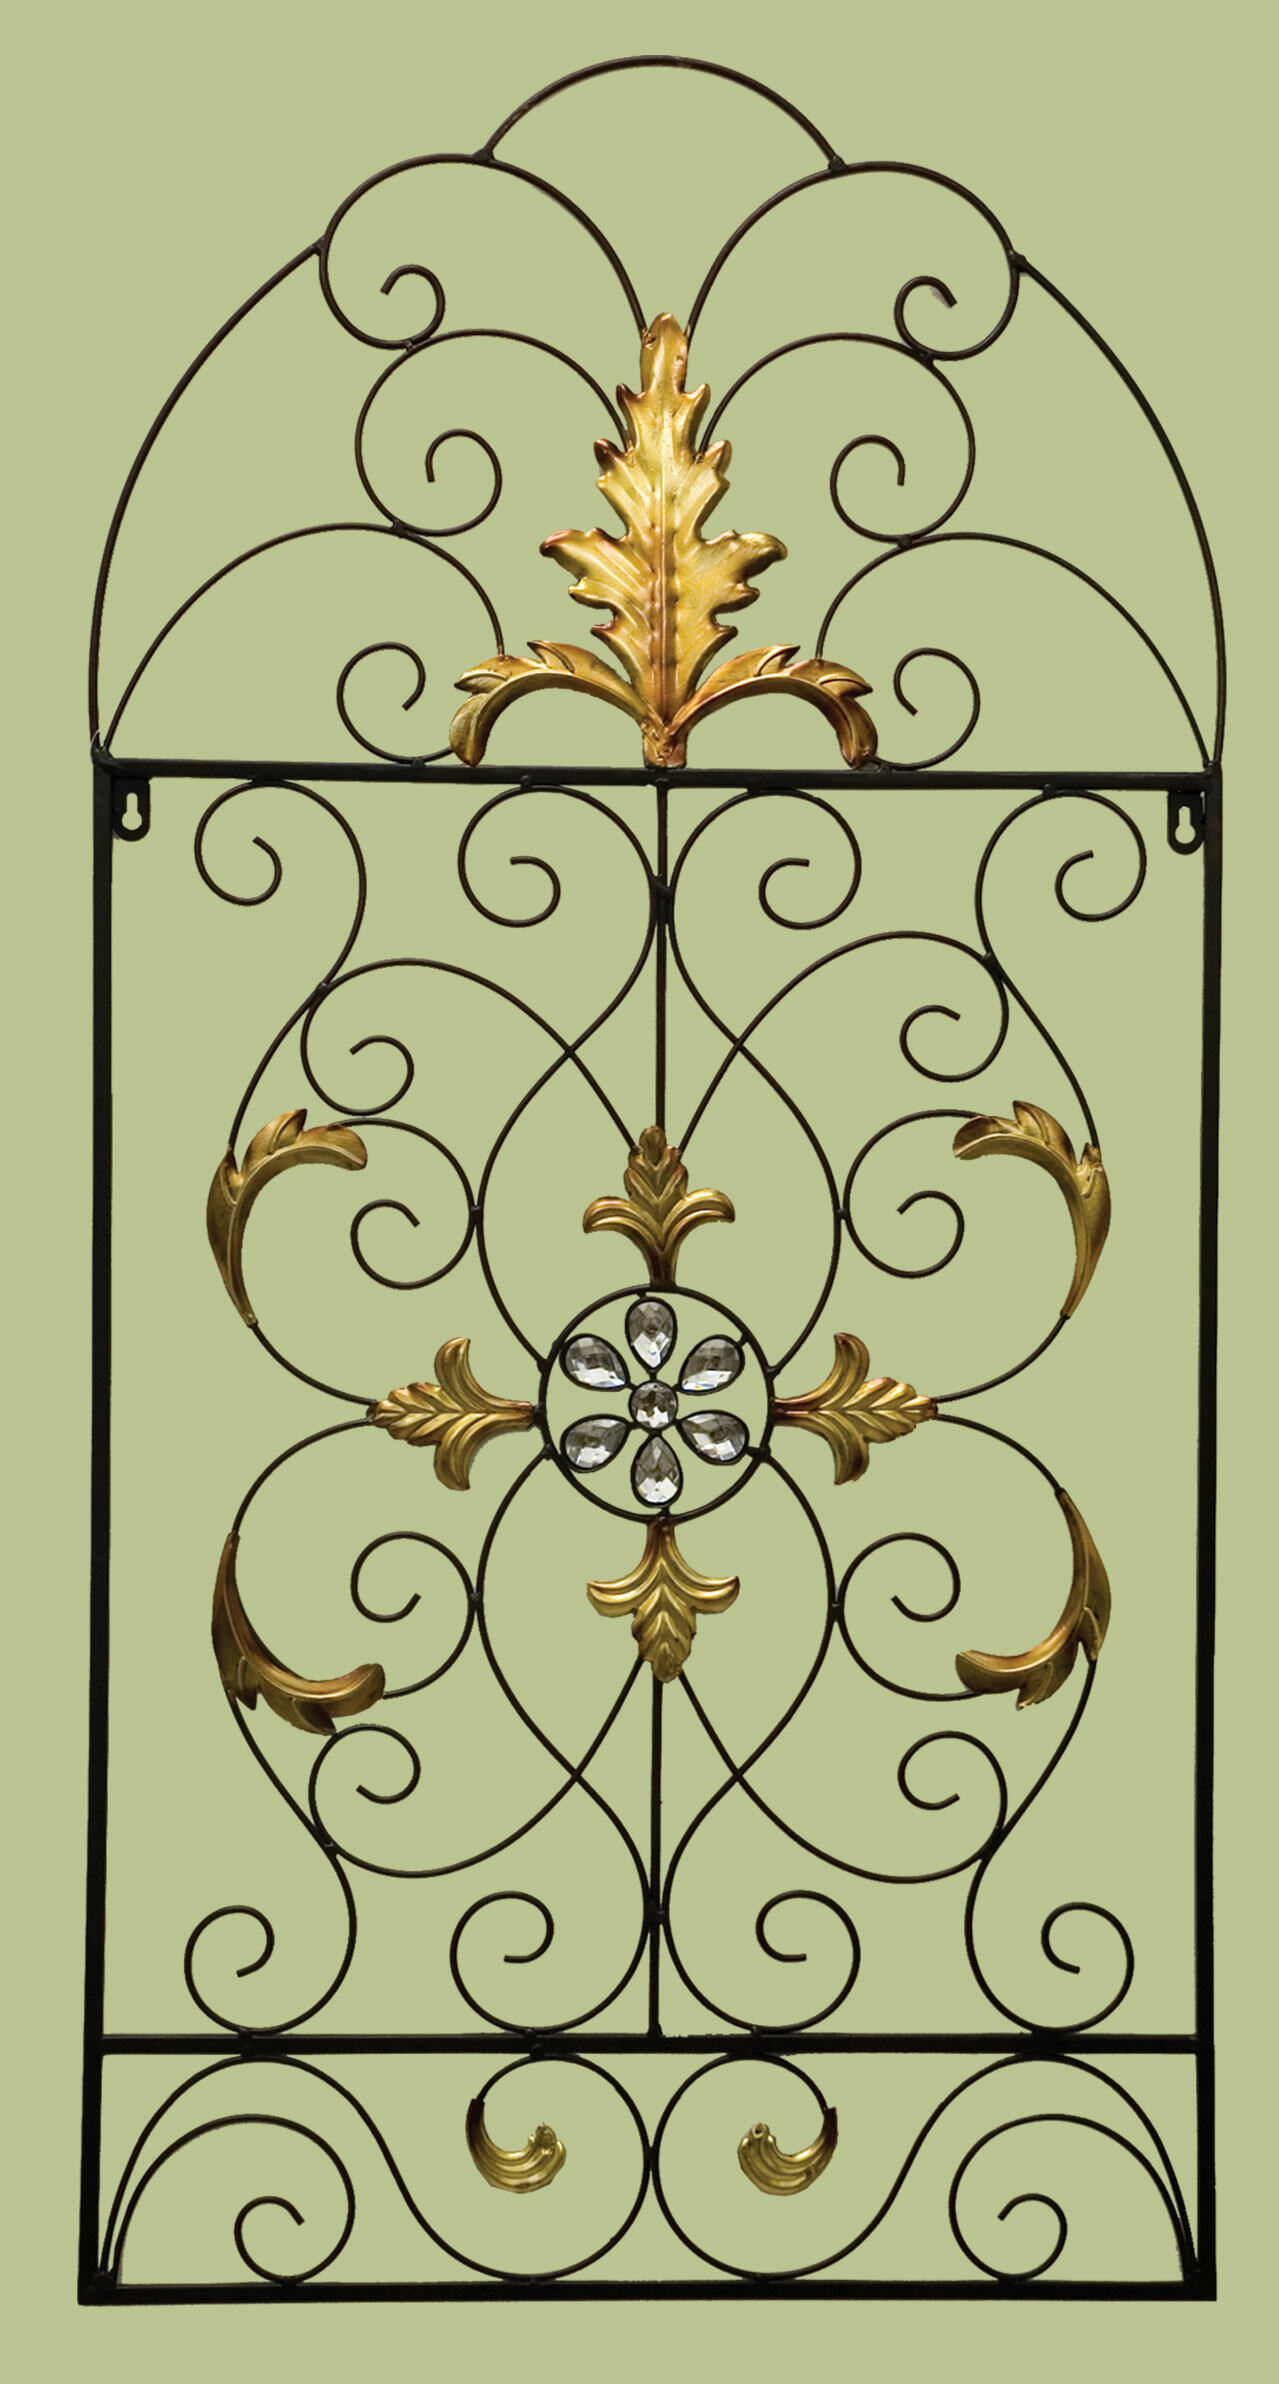 Fantastic Scroll Metal Wall Art Contemporary - The Wall Art ...